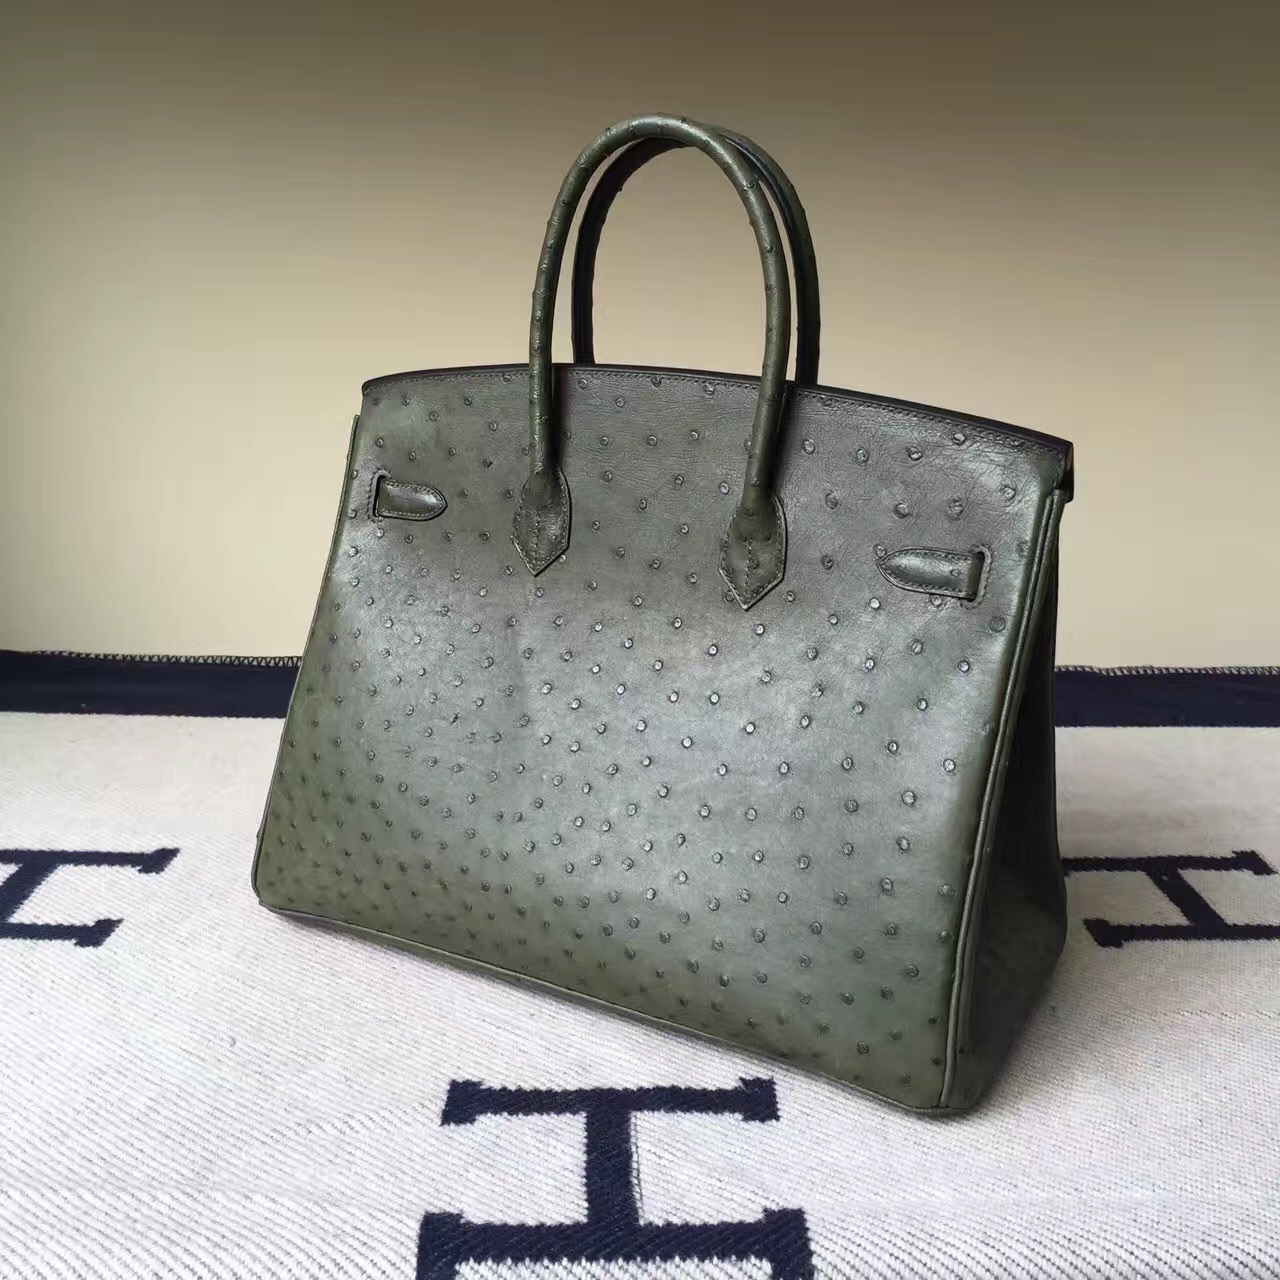 Hand Stitching Hermes V6 Canopee Green Ostrich Leather Birkin Bag35cm